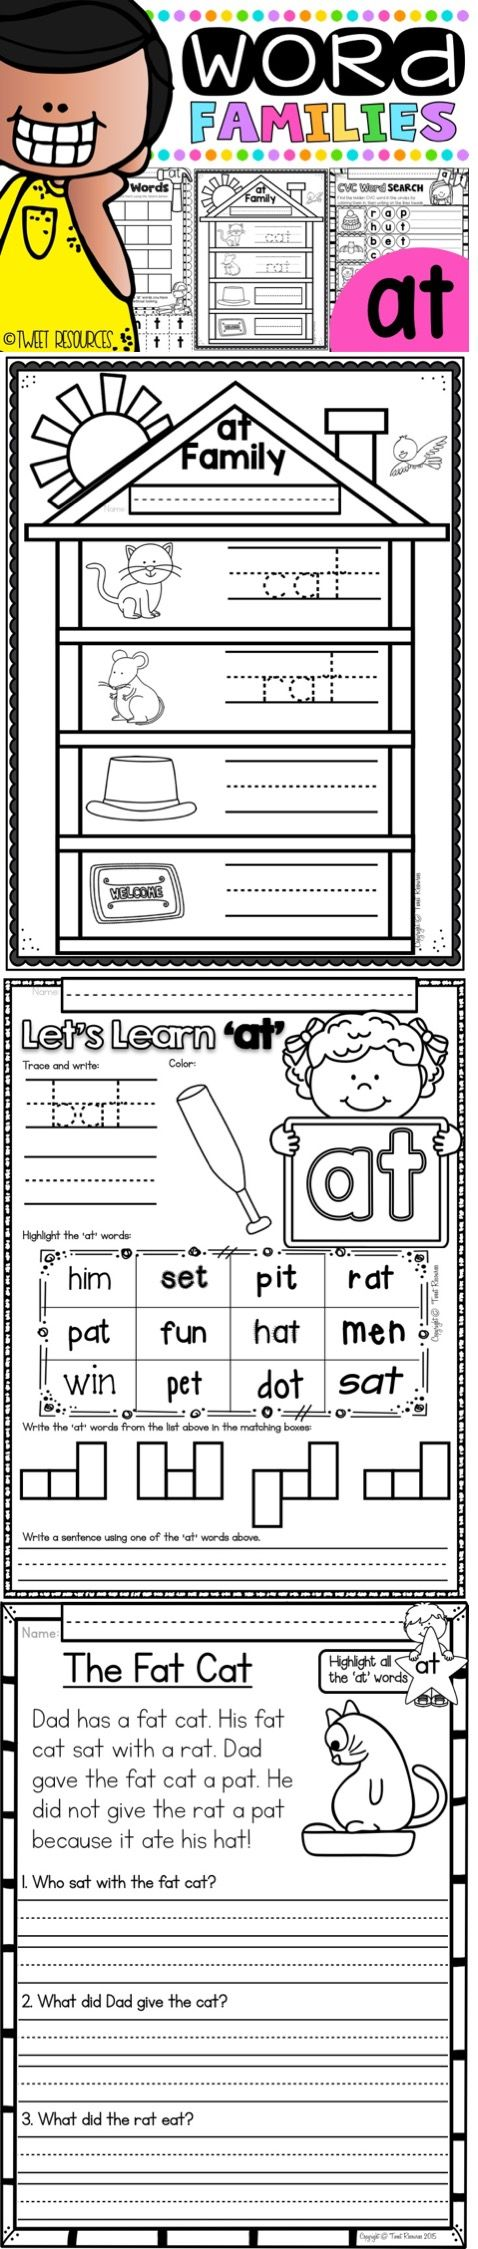 """FREEBIE! Enjoy this FUN AND ENGAGING CVC Word Family freebie by Tweet Resources! """" """"This is a comprehensive pack for this word family. I can't wait to introduce these reinforcing activities to my Kinders"""" Cynthia C"""